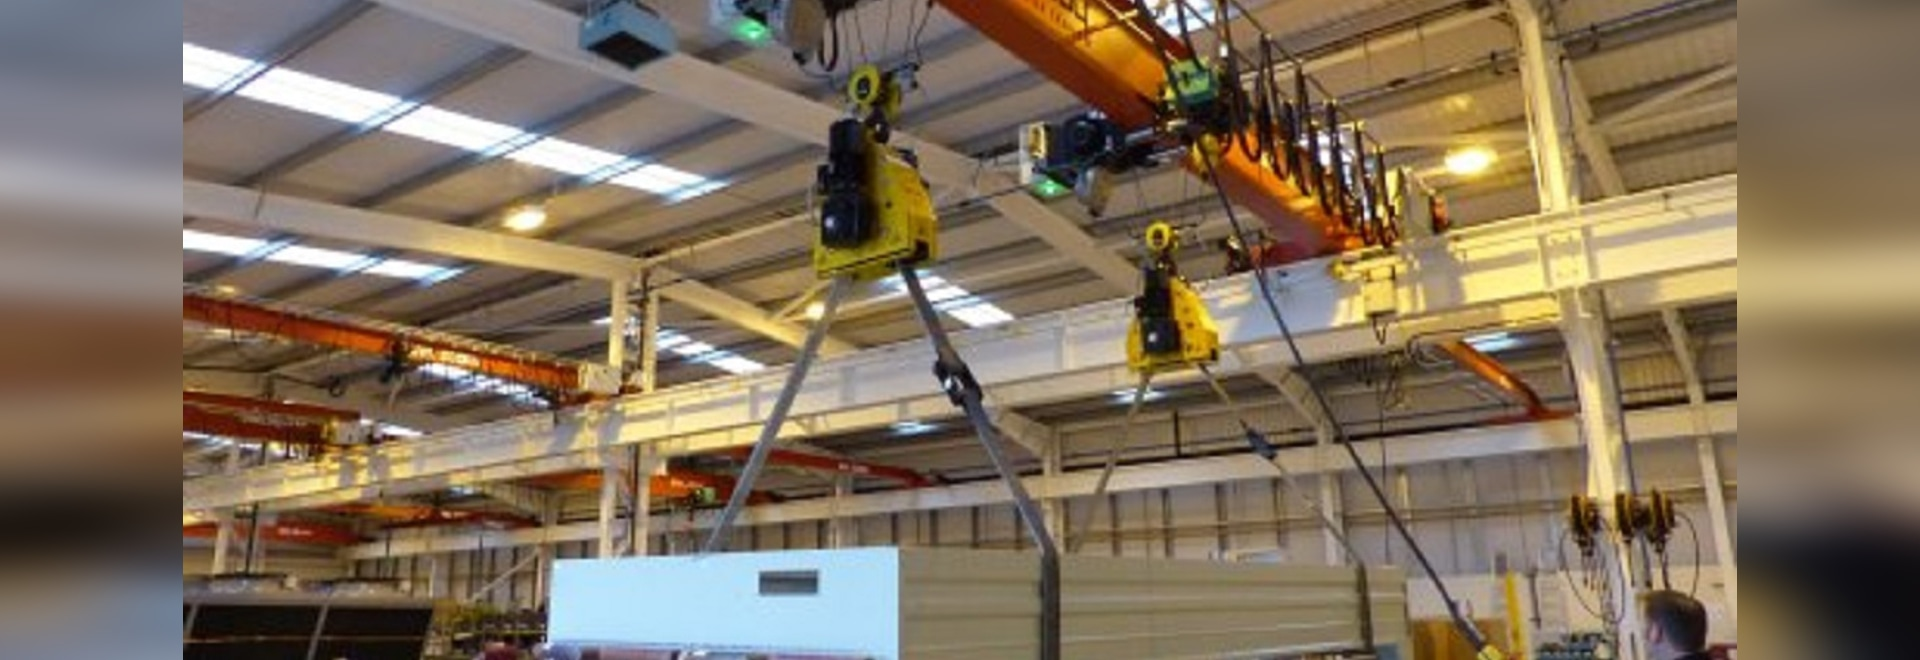 PELLOBY Cranes and VERLINDE hoists installed following Kelvion warehouse fire